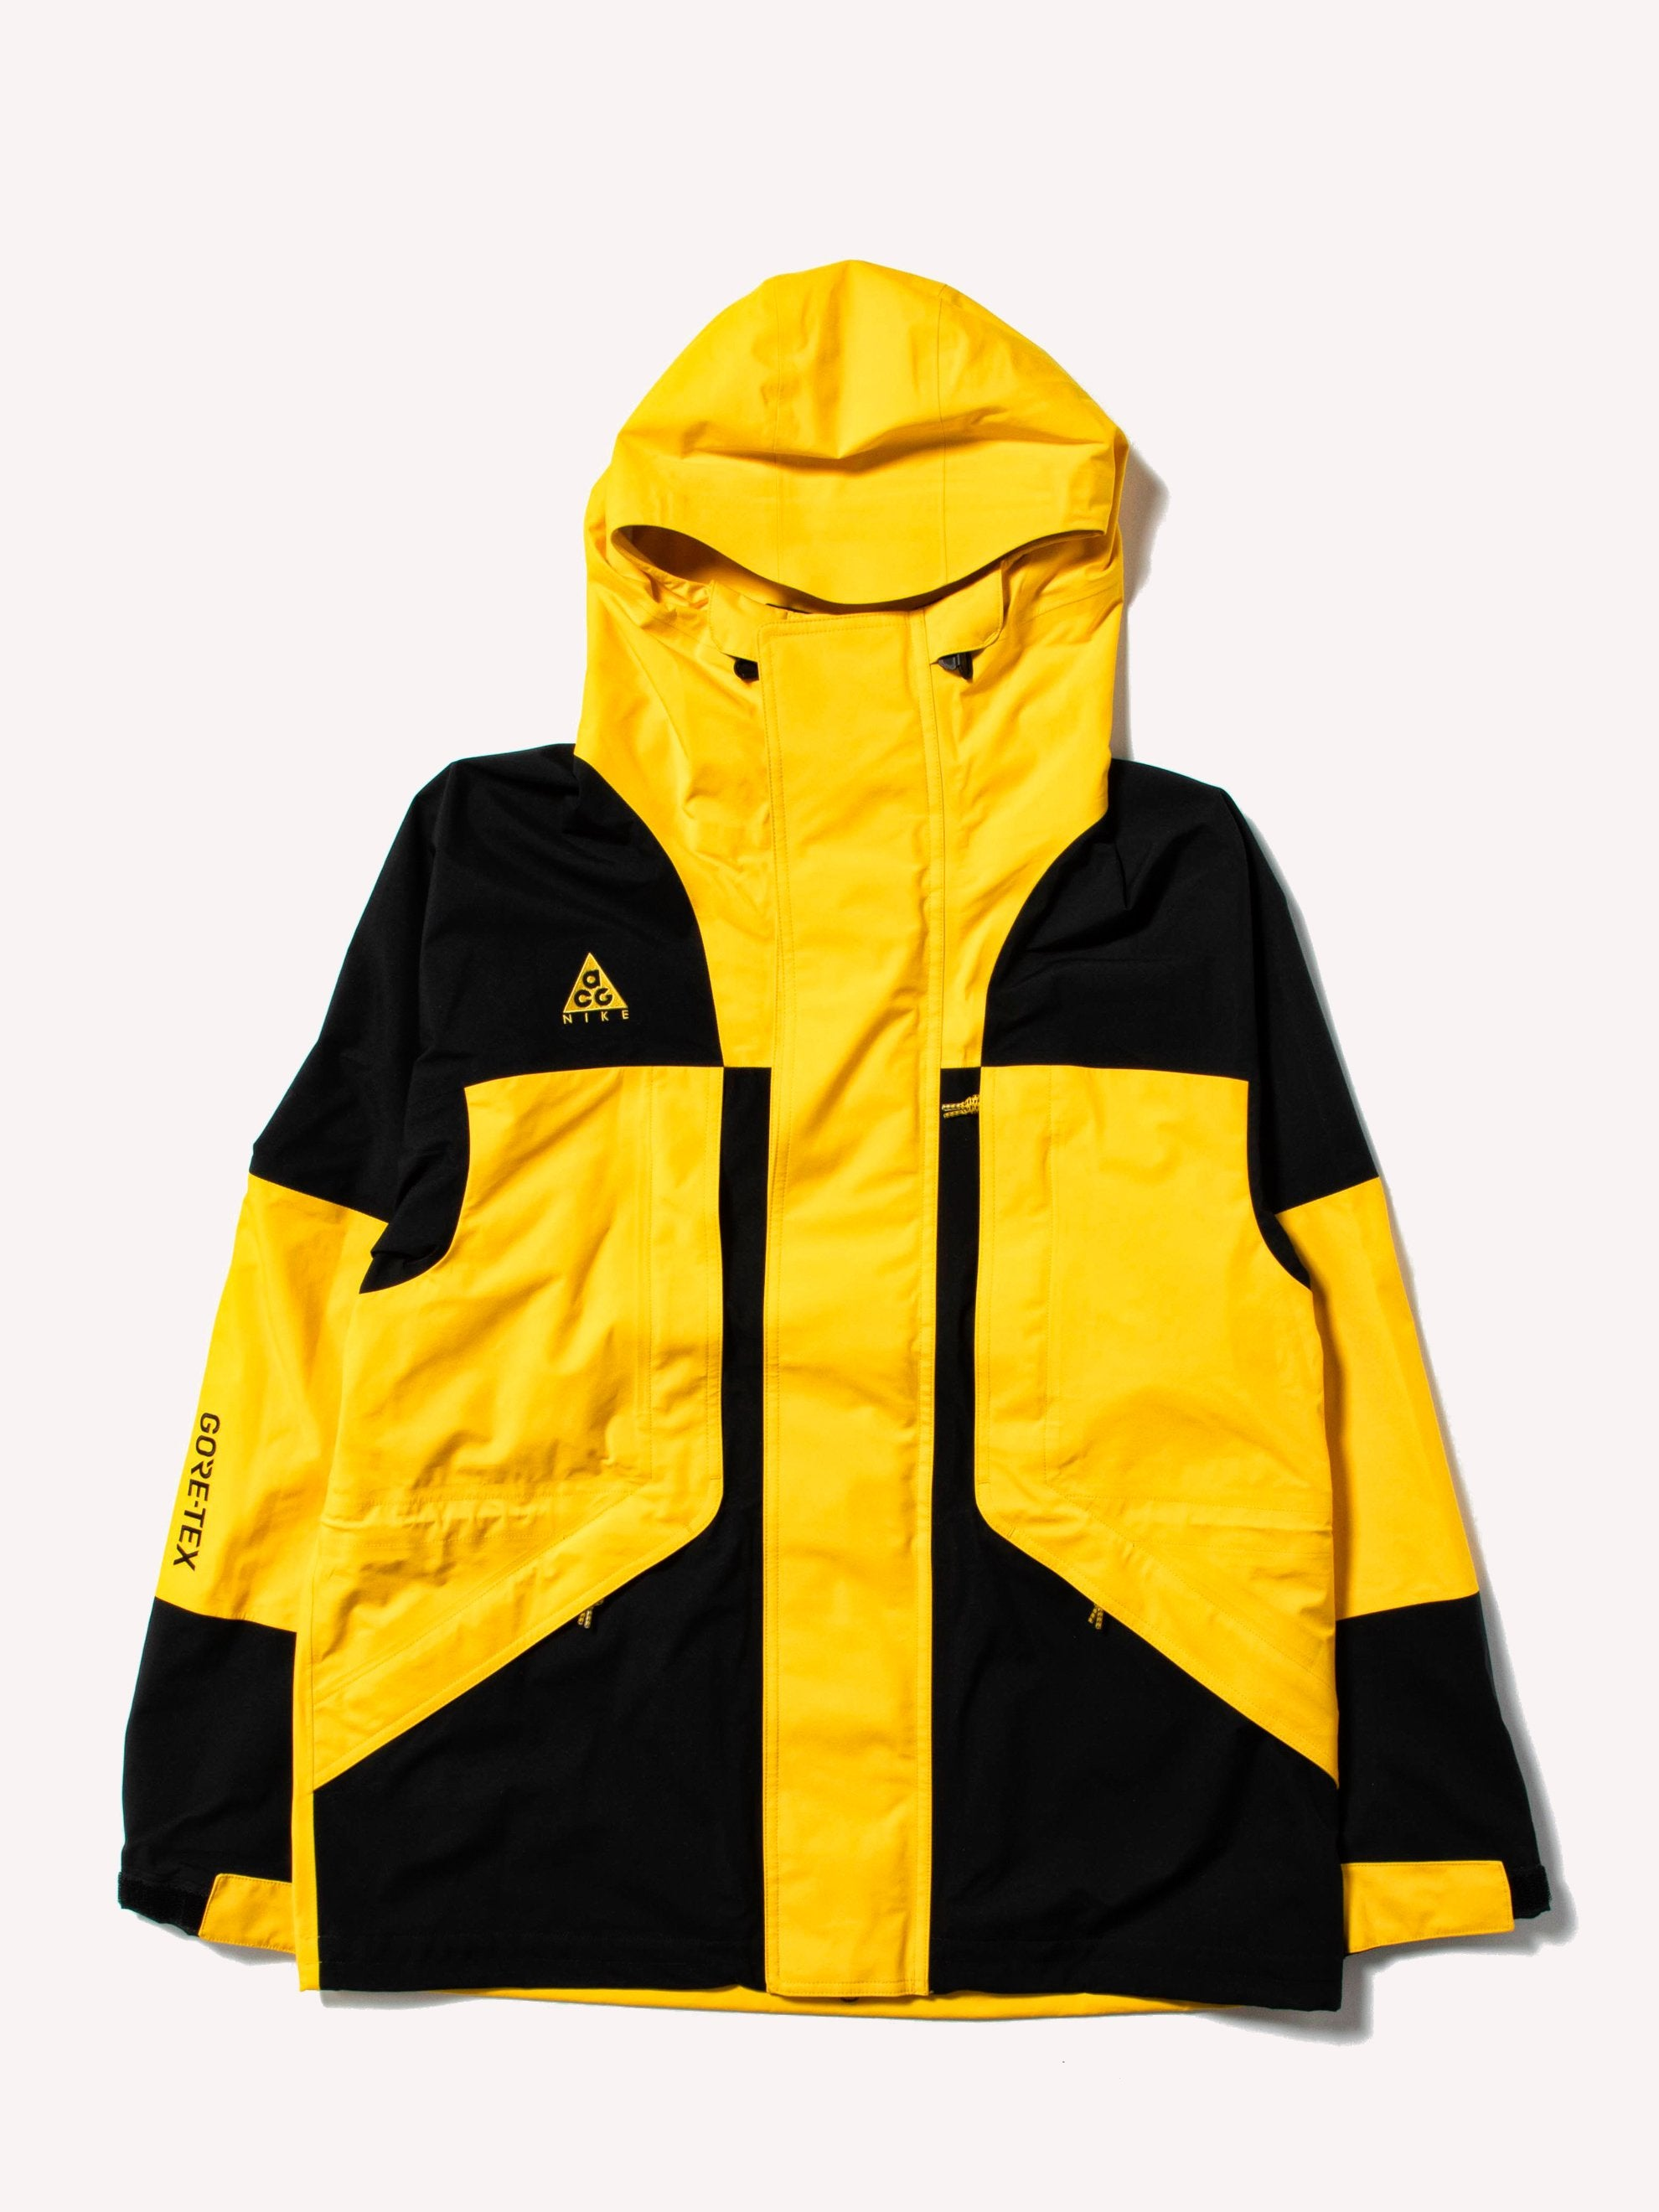 3a40a245c47 Buy NIKE ACG Gore-Tex Jacket Online at UNION LOS ANGELES